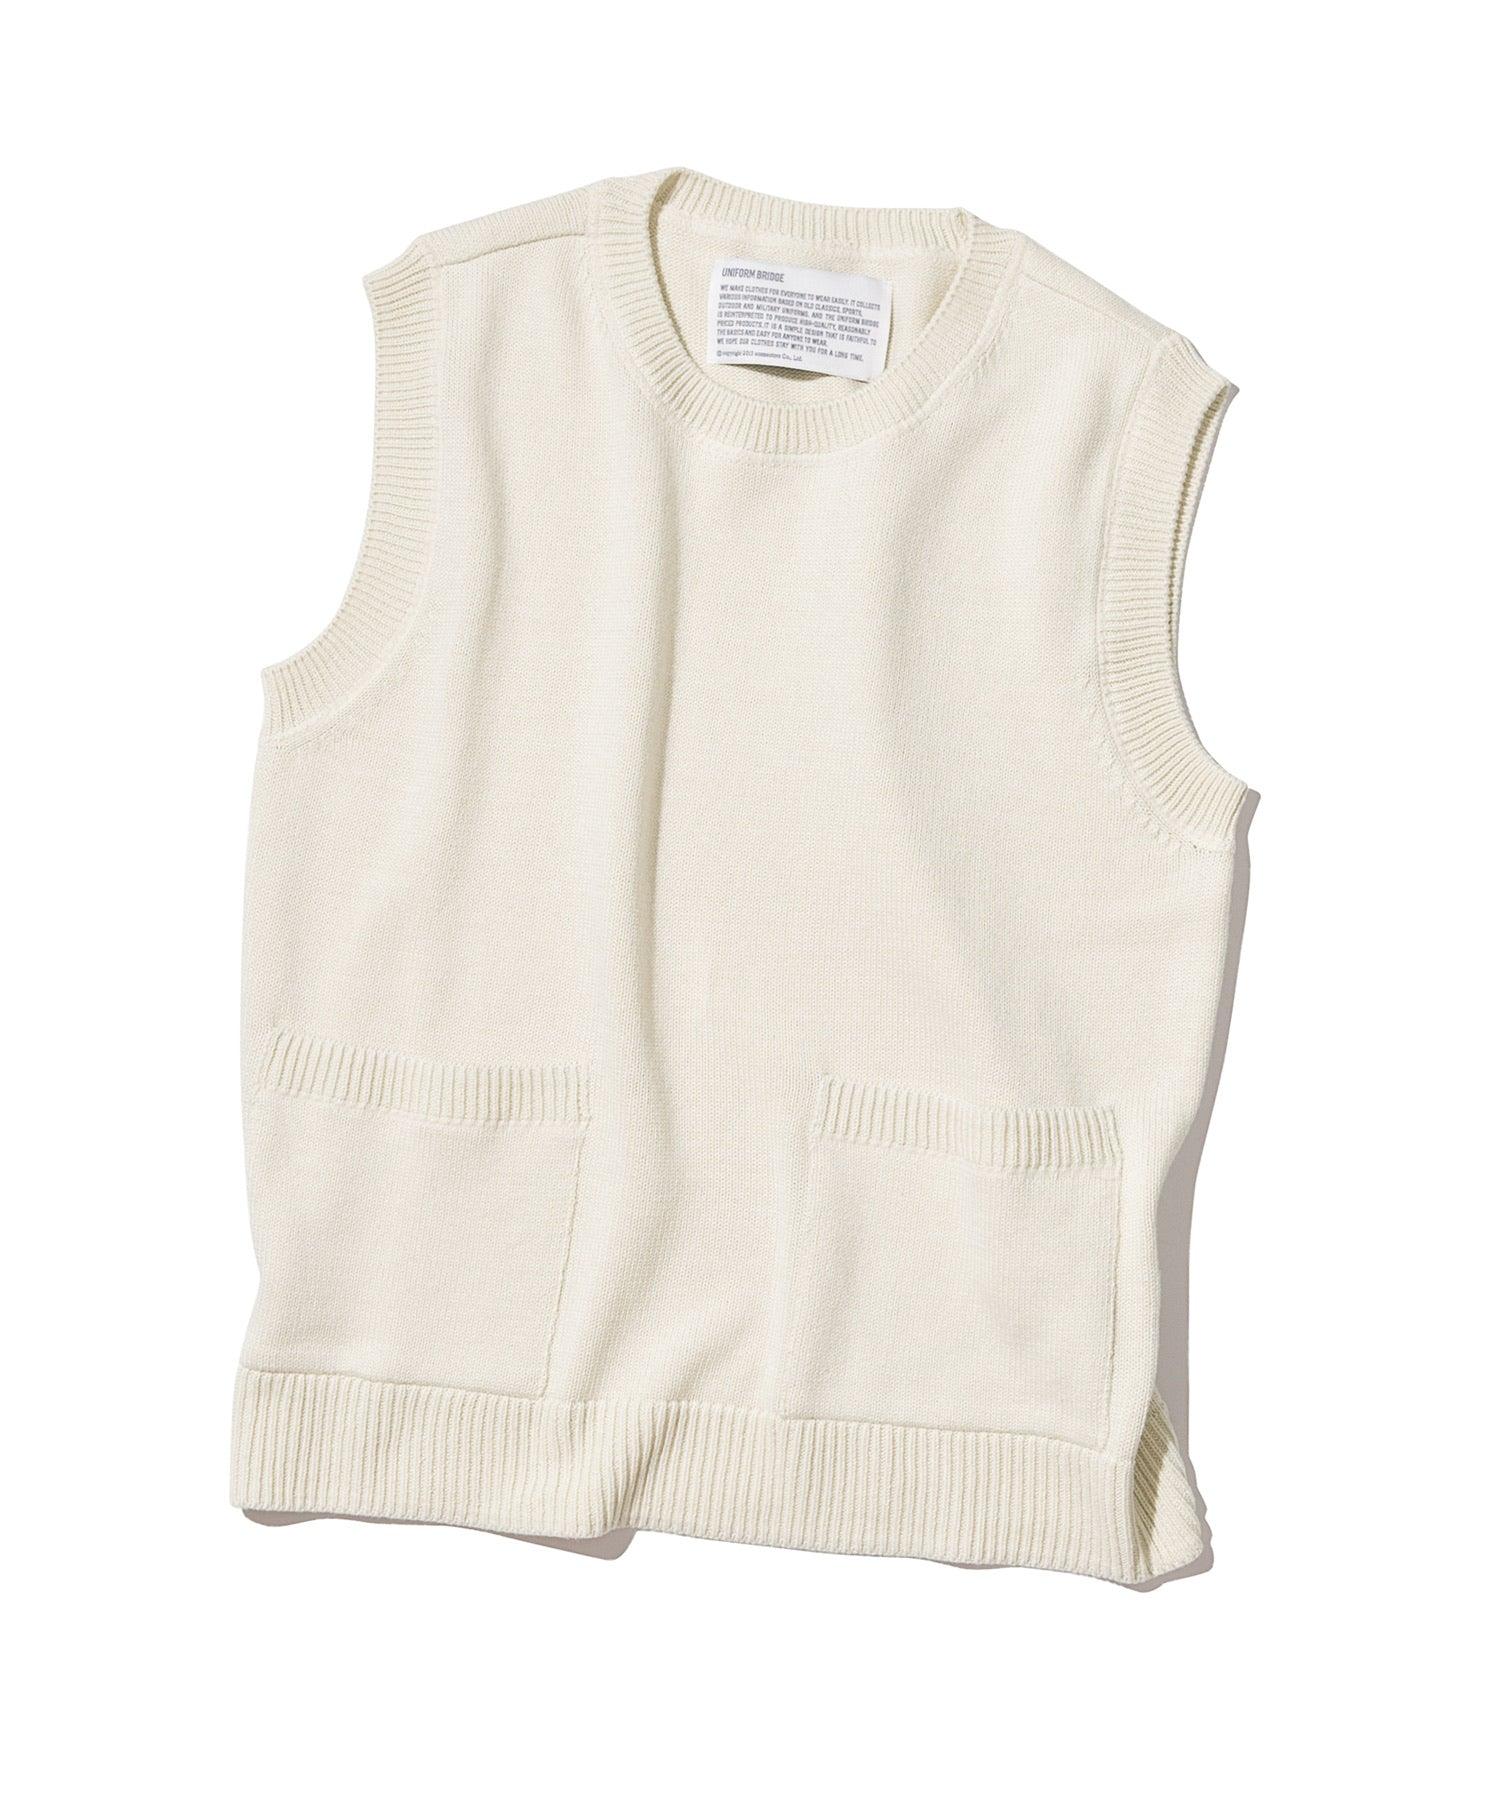 Knit Vest in Off White